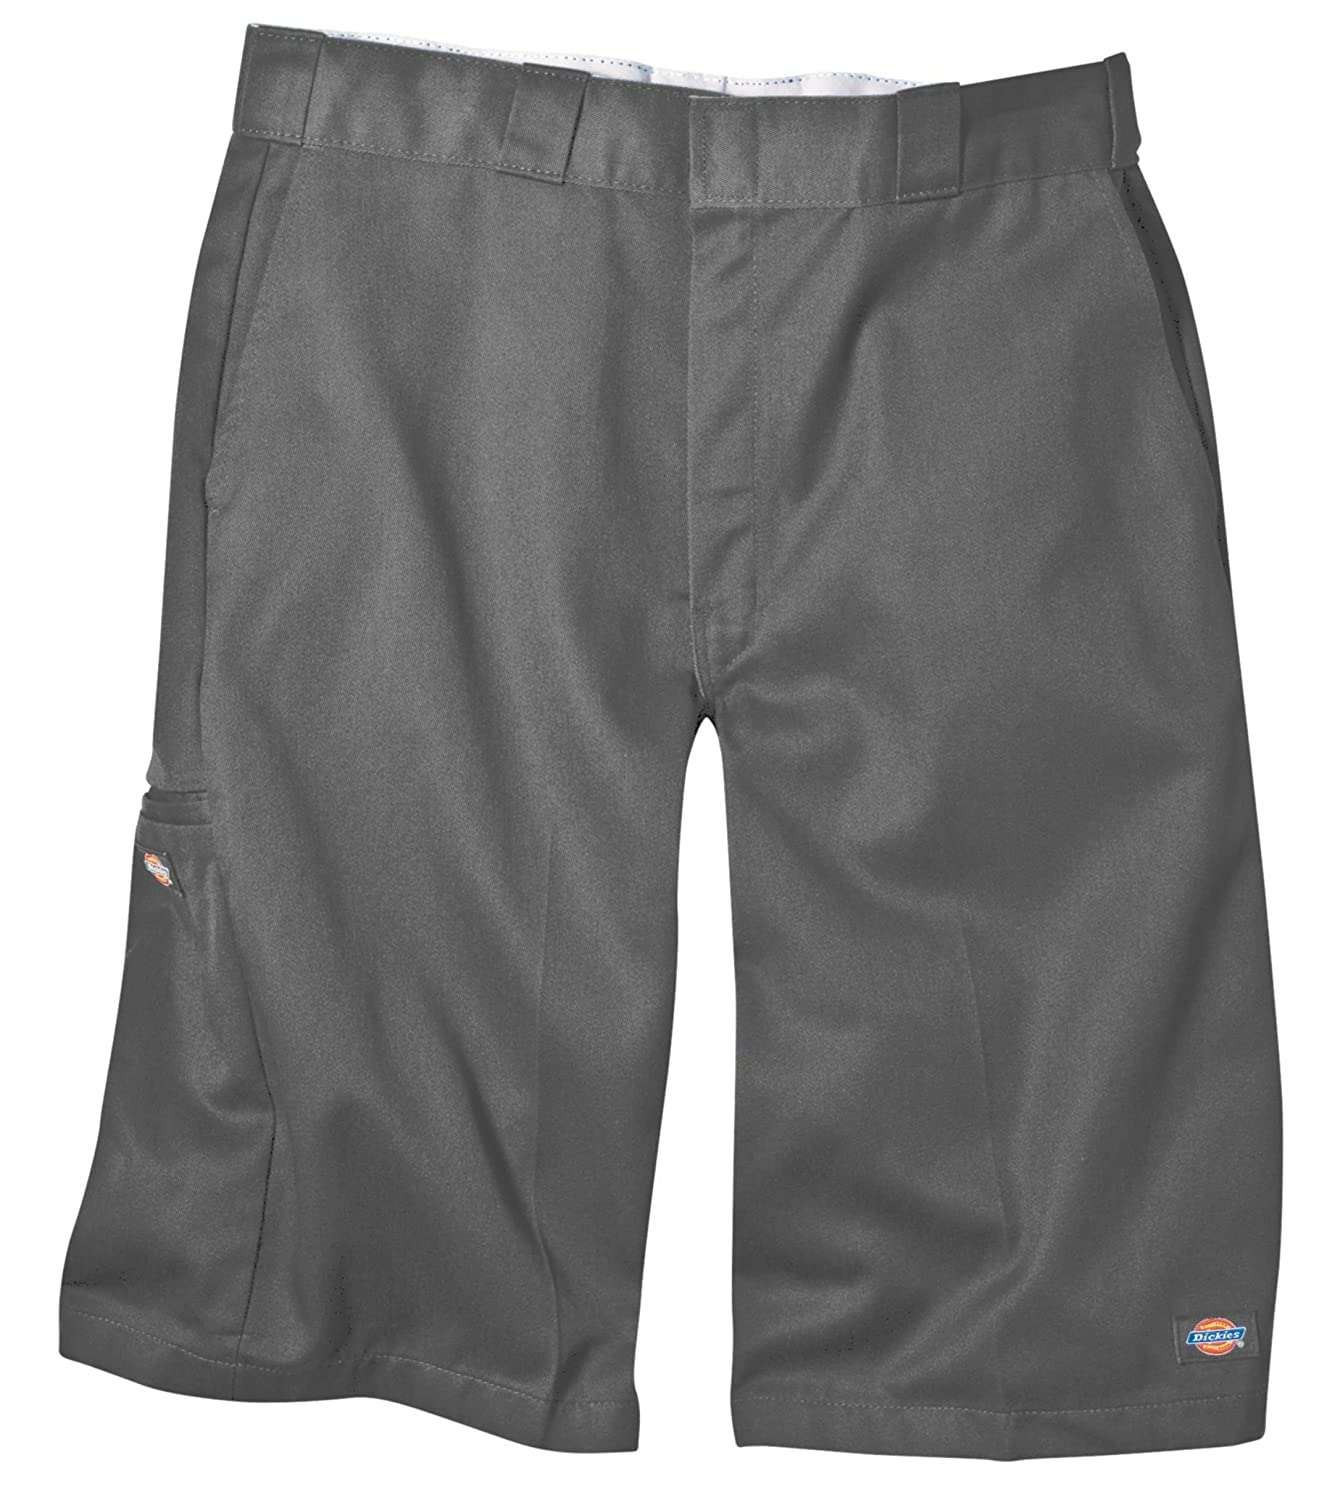 Dickies Men's 13 Inch Loose Fit Multi-Pocket Work Short, Charcoal, 48 42283CH 48